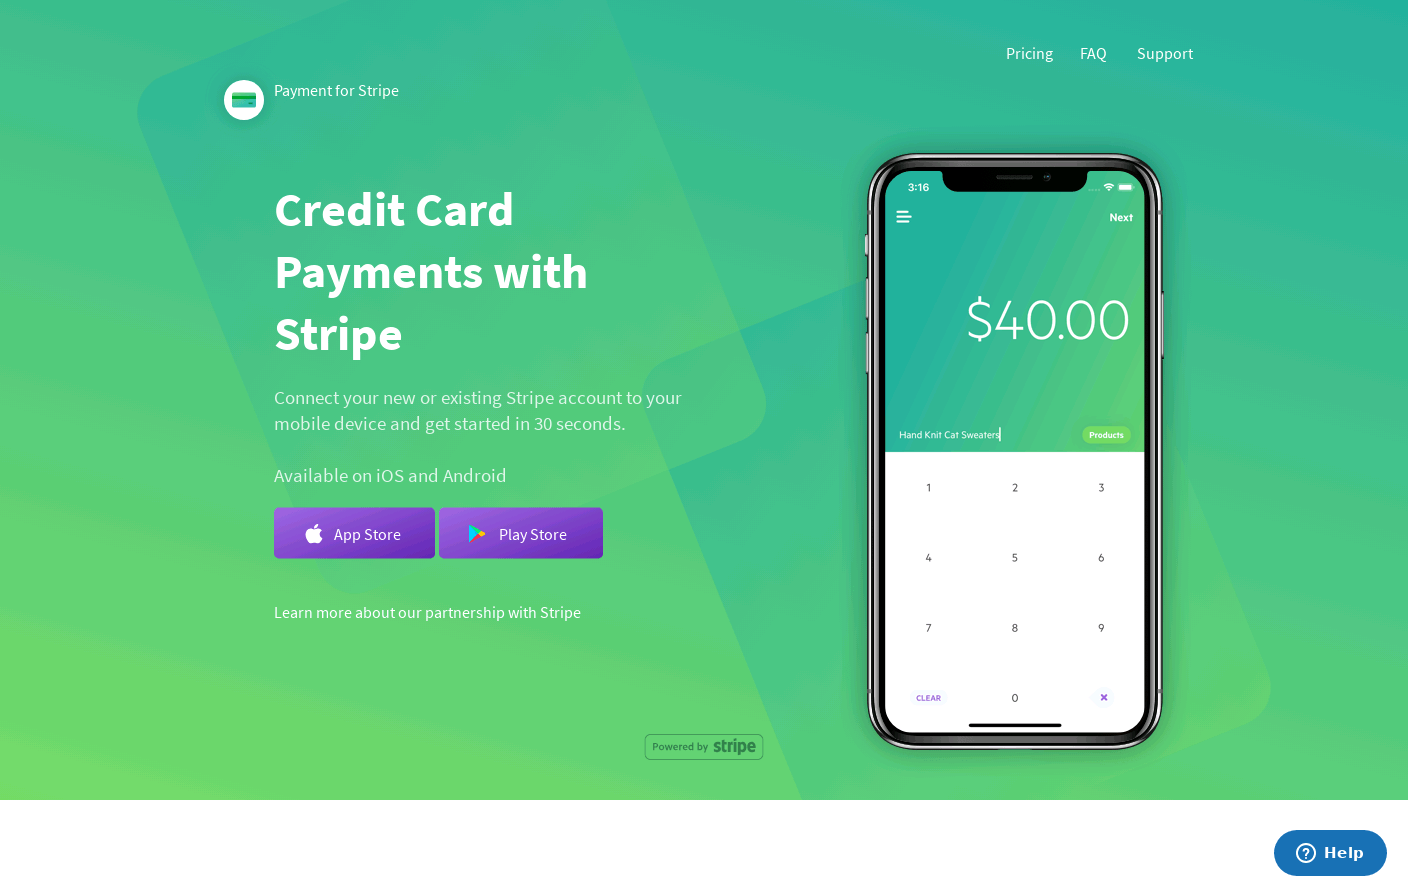 Payment for Stripe